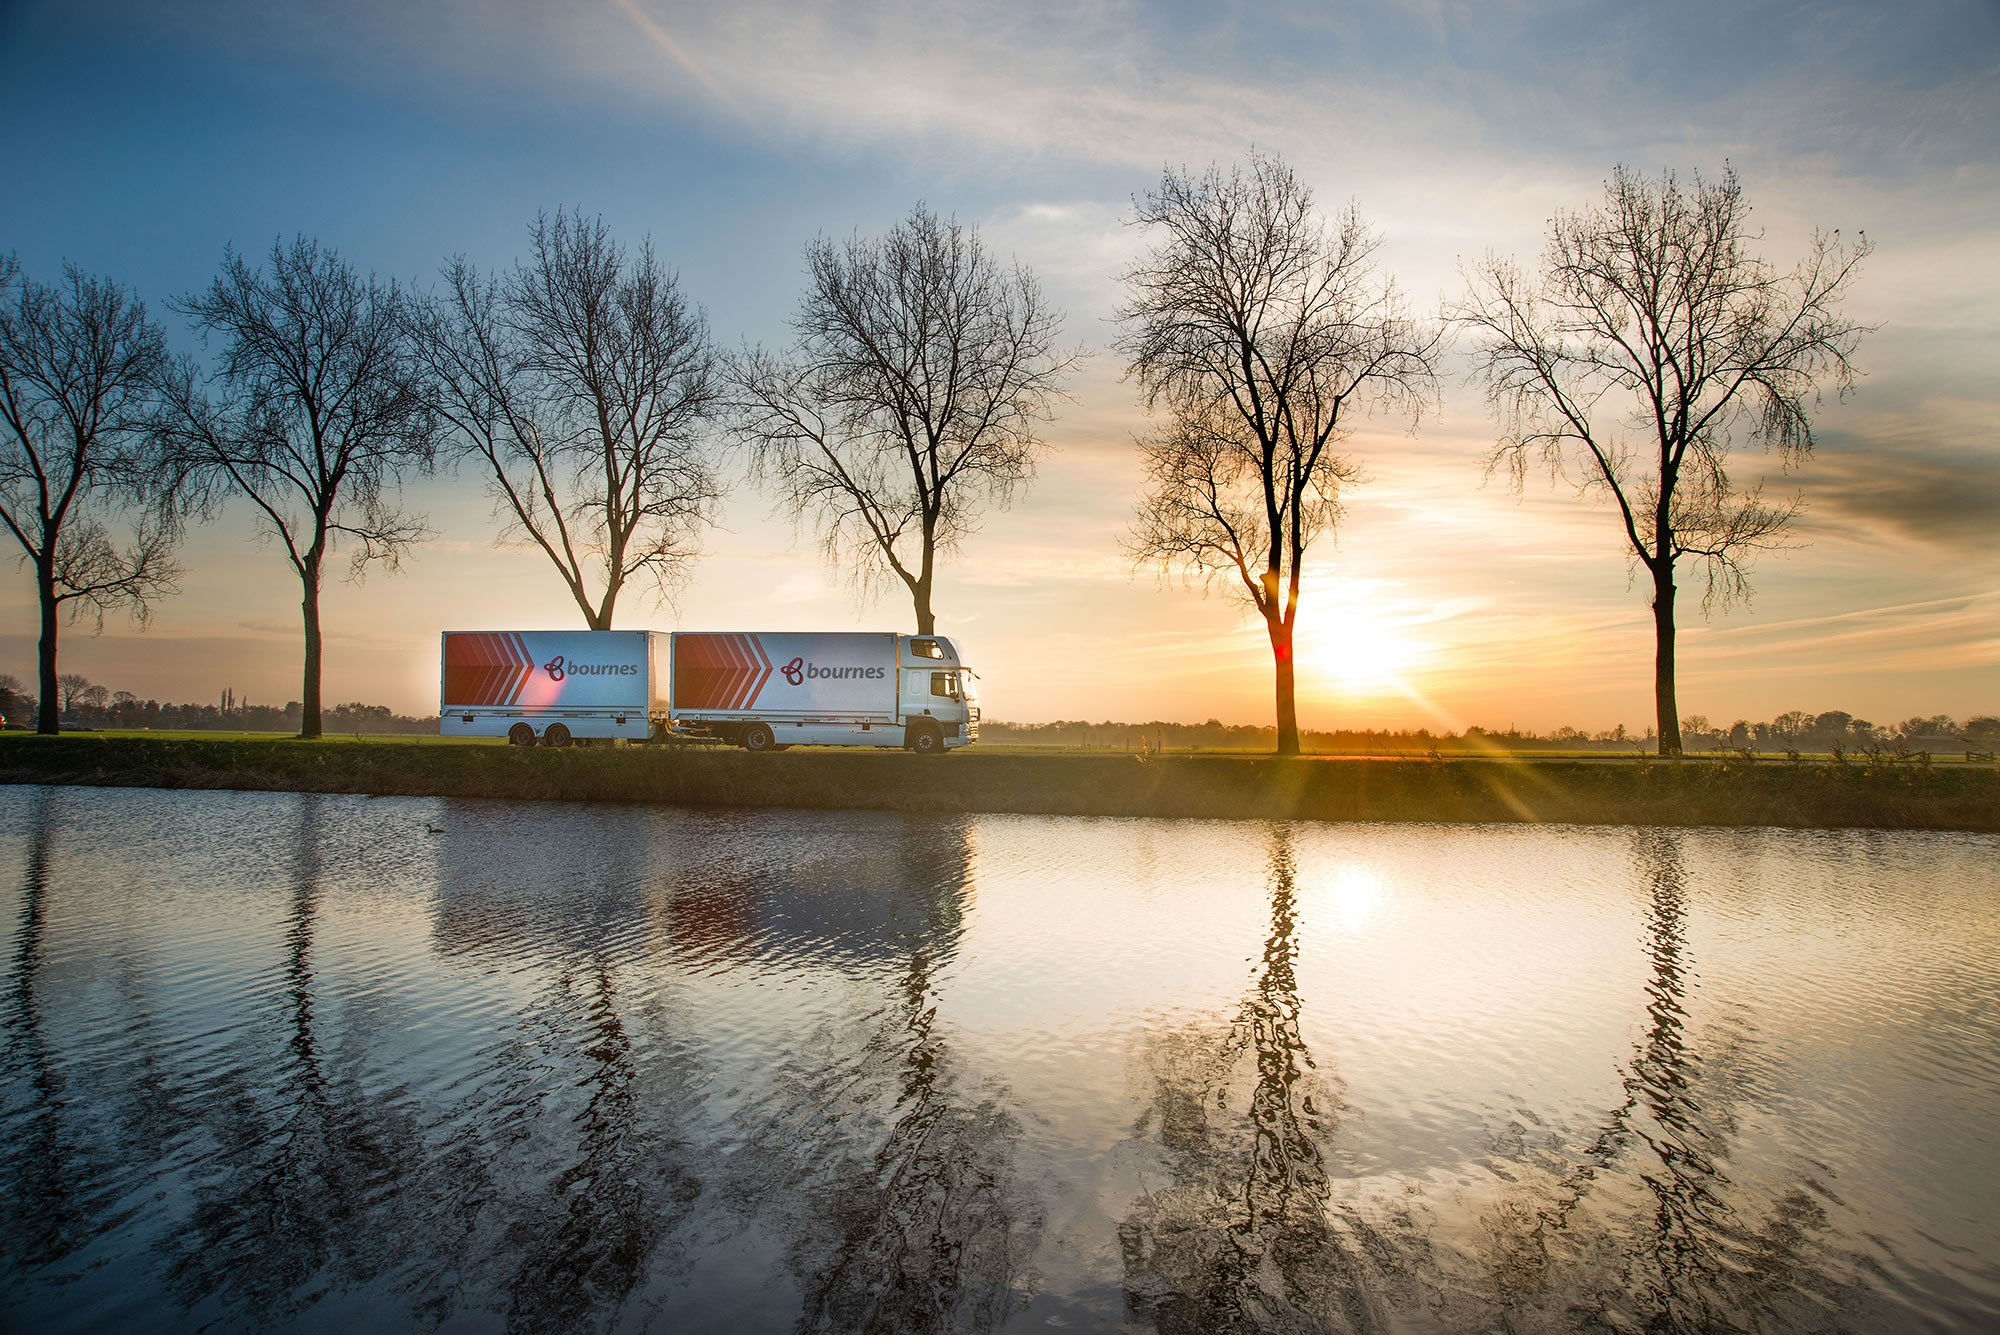 Removals to the Netherlands after Brexit